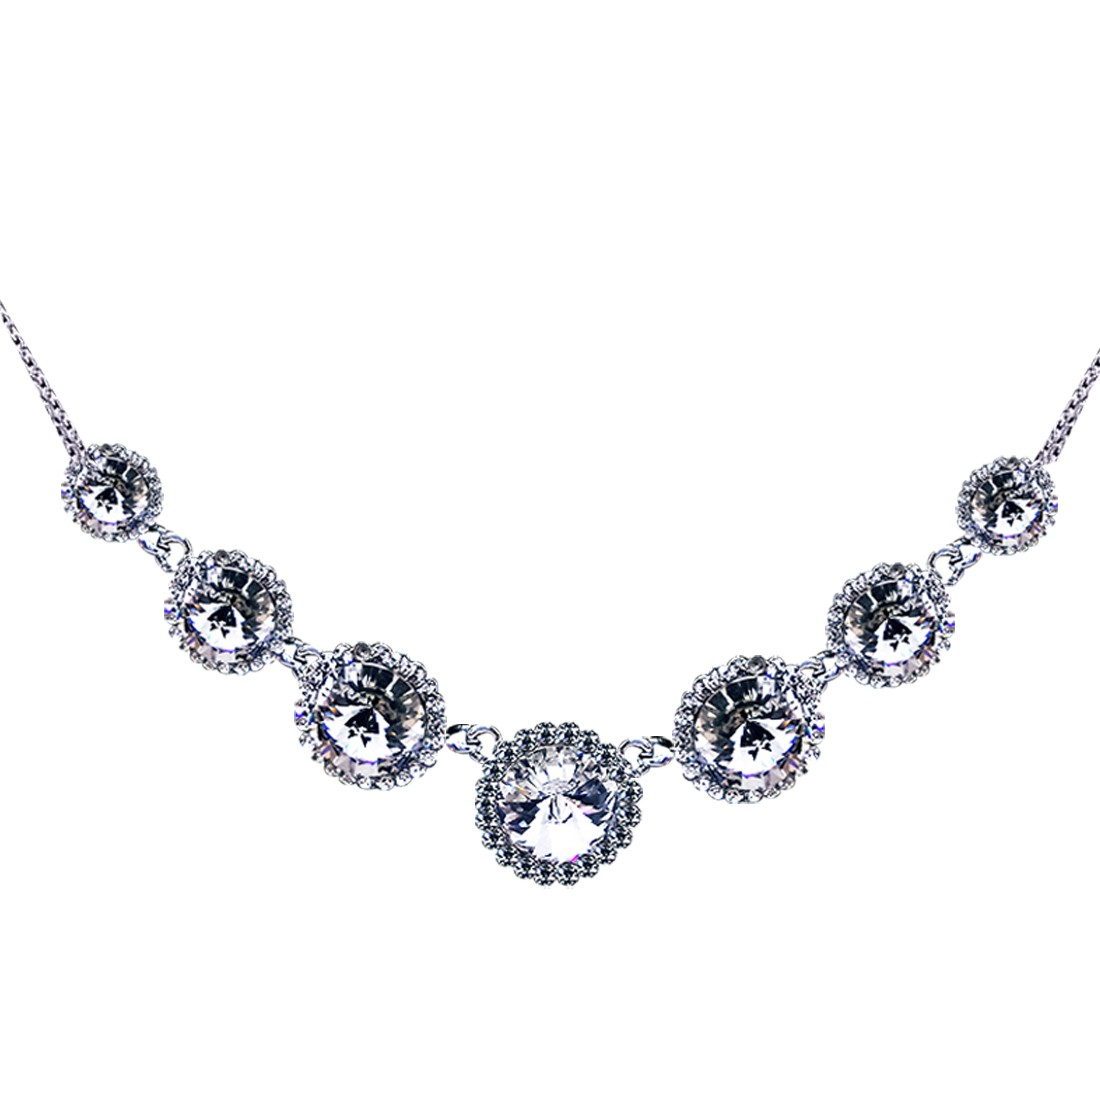 Carol Necklace - PS16031